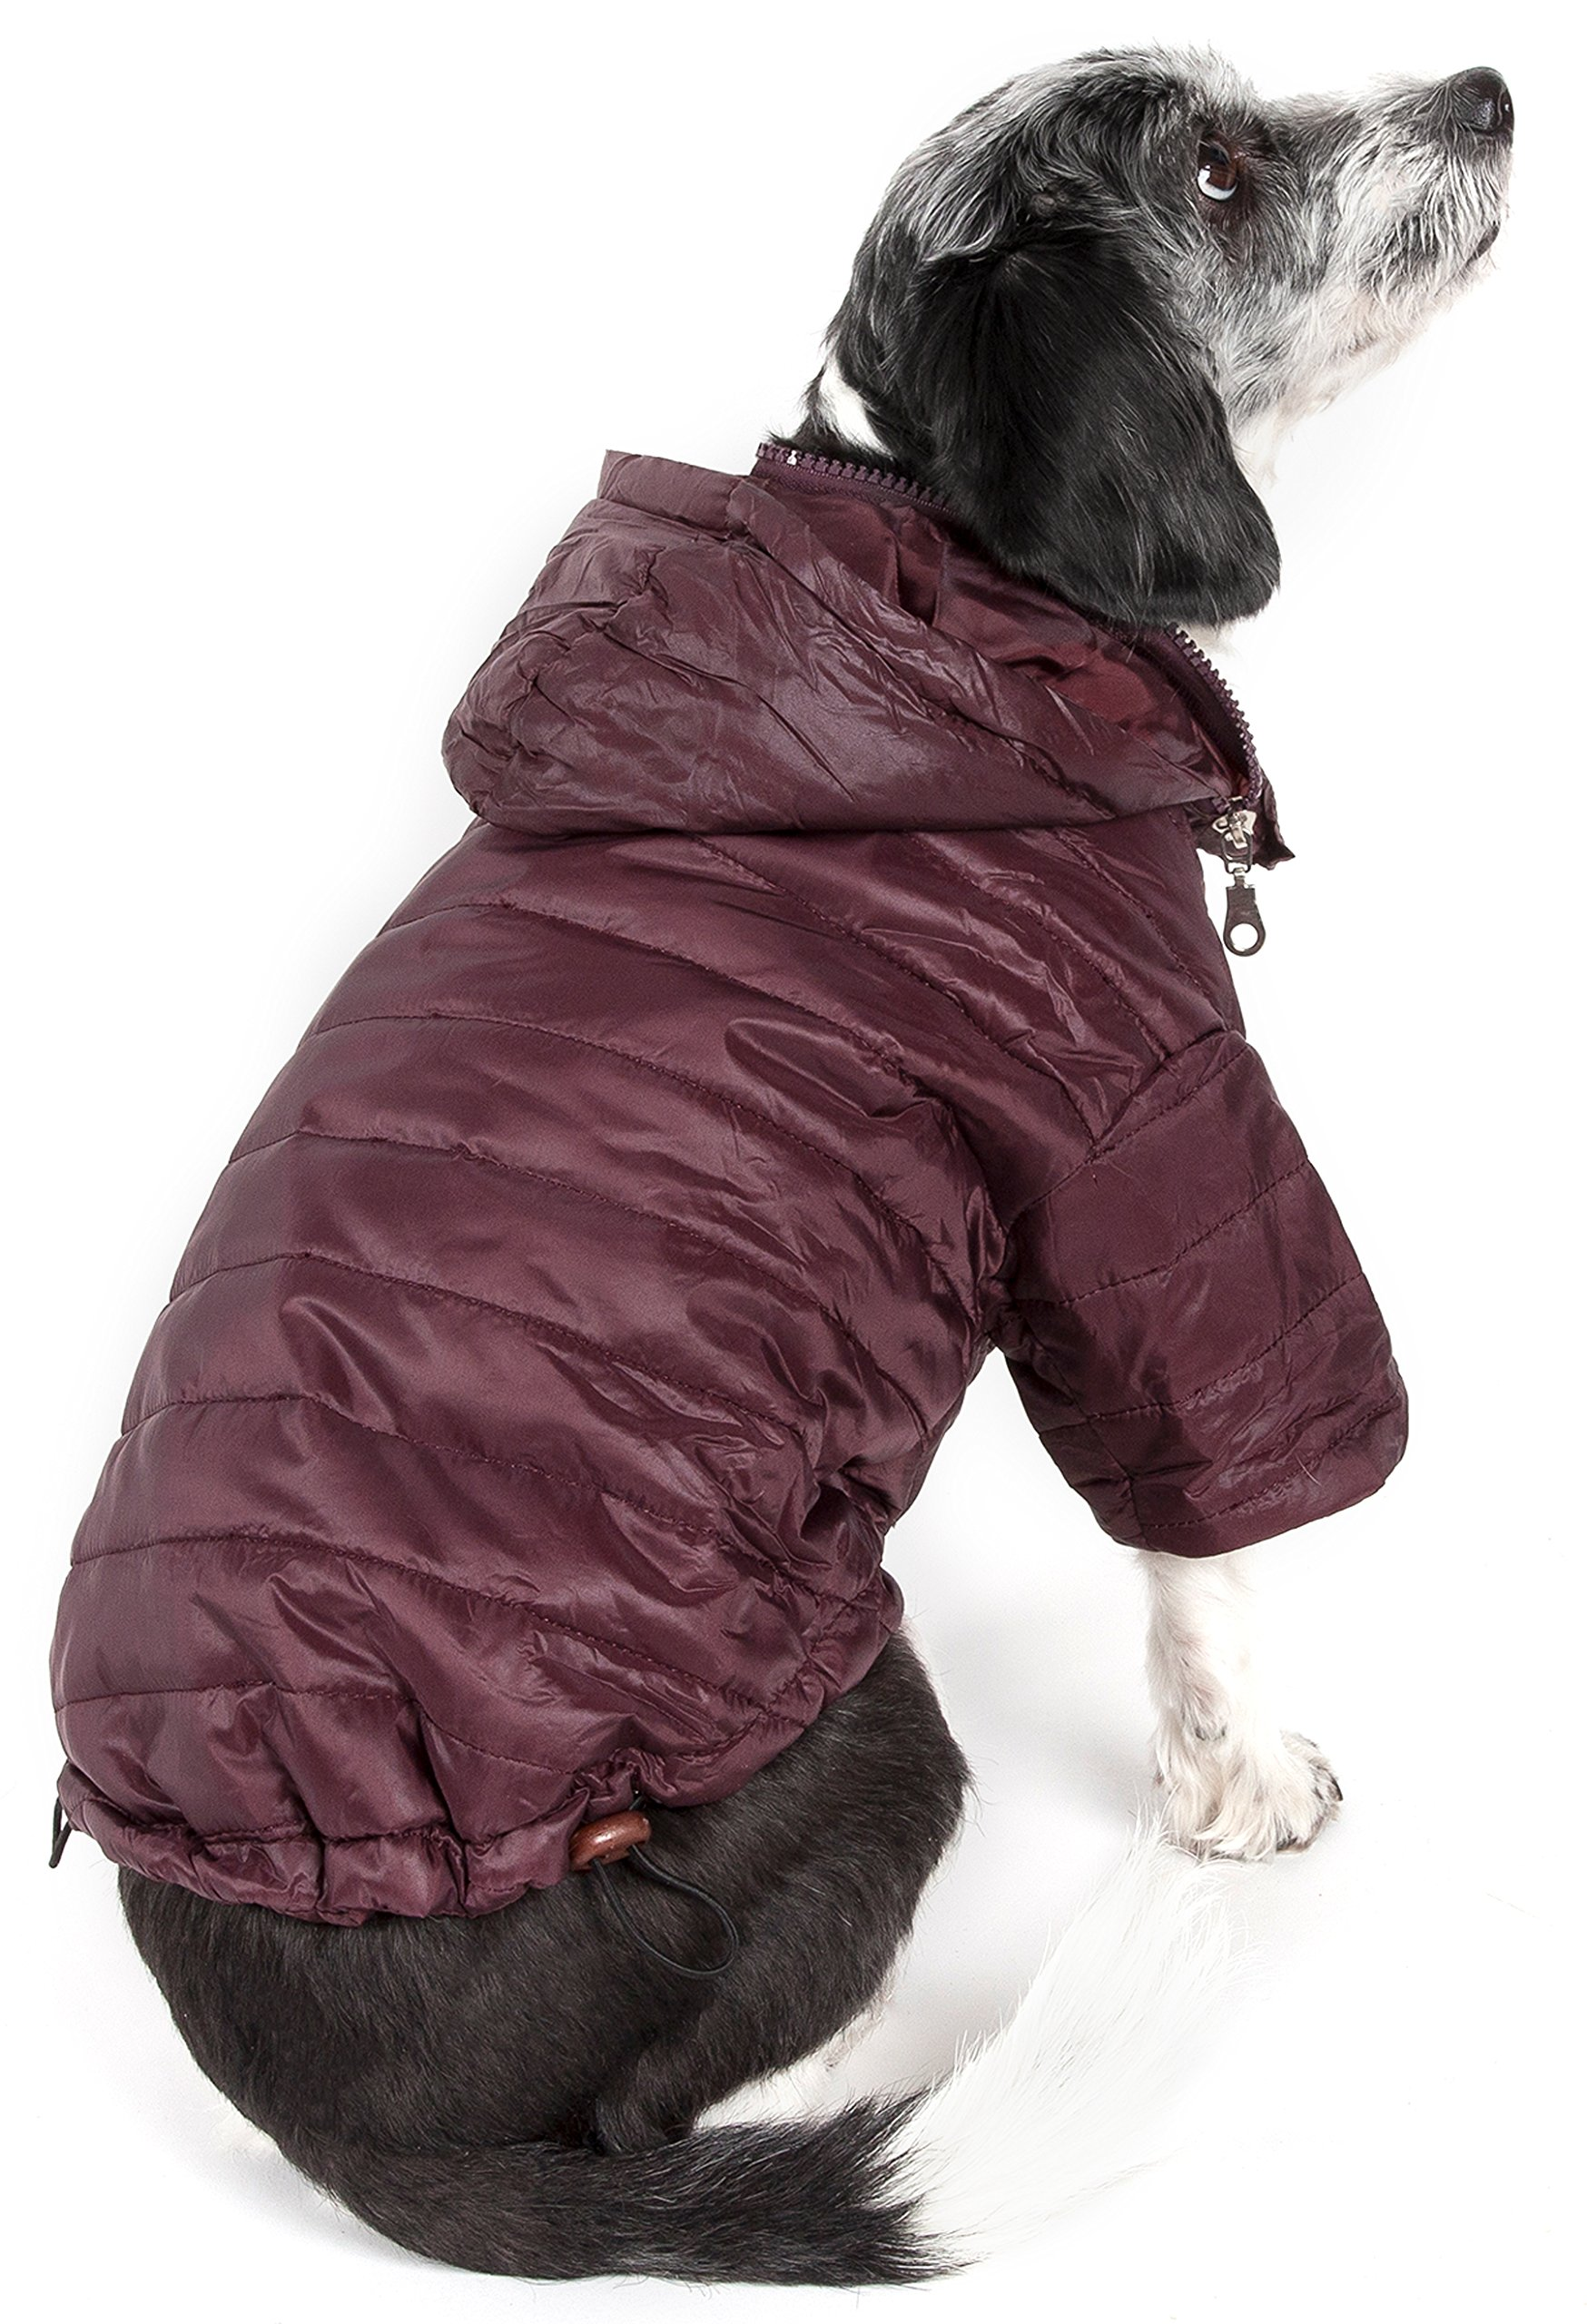 PET LIFE 'Sporty Avalanche' Lightweight and Adjustable Insulated Folding Travel Pet Dog Coat Jacket w/Built-in concealed hood, Medium, Dark Cocoa Brown